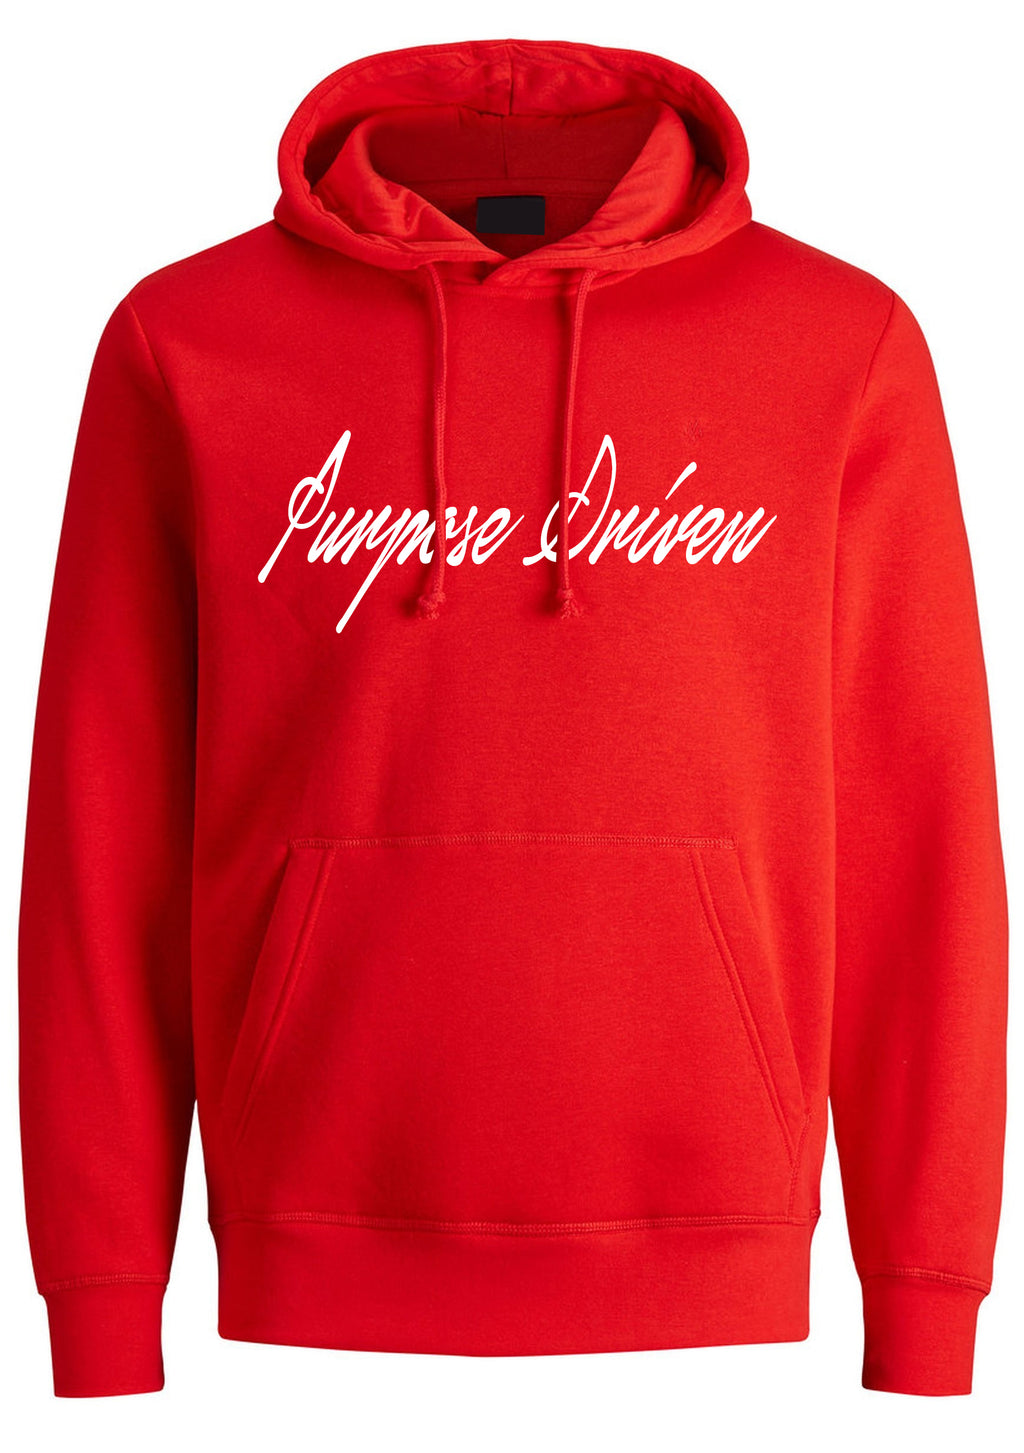 PURPOSE DRIVEN Unisex Oversized Hoodie (Red)